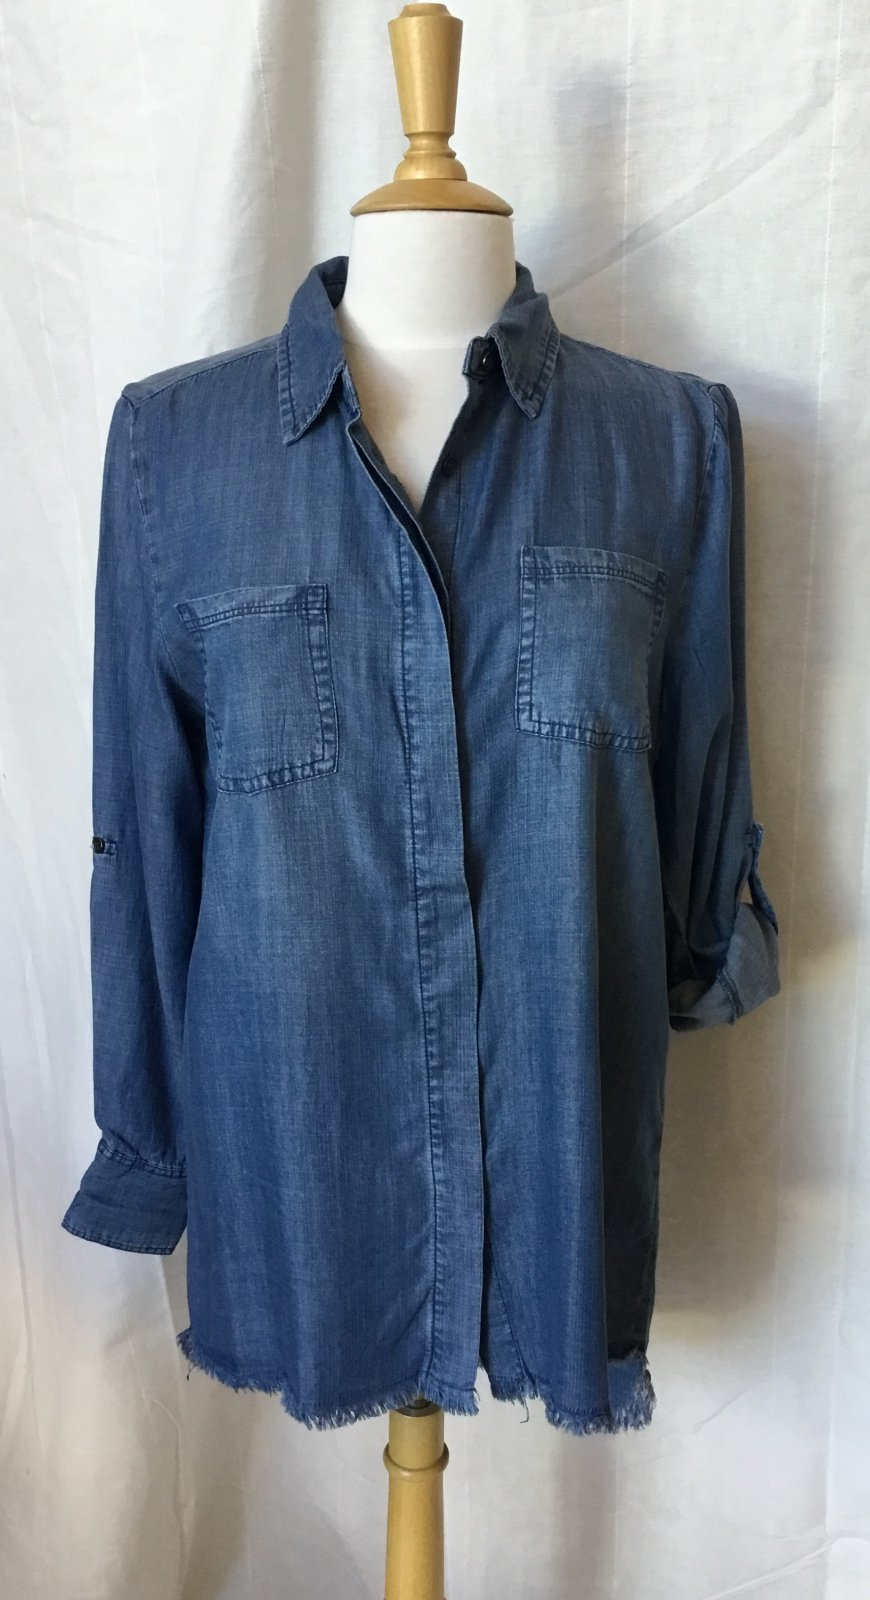 JOH Daphne Fray Edge Denim Tunic